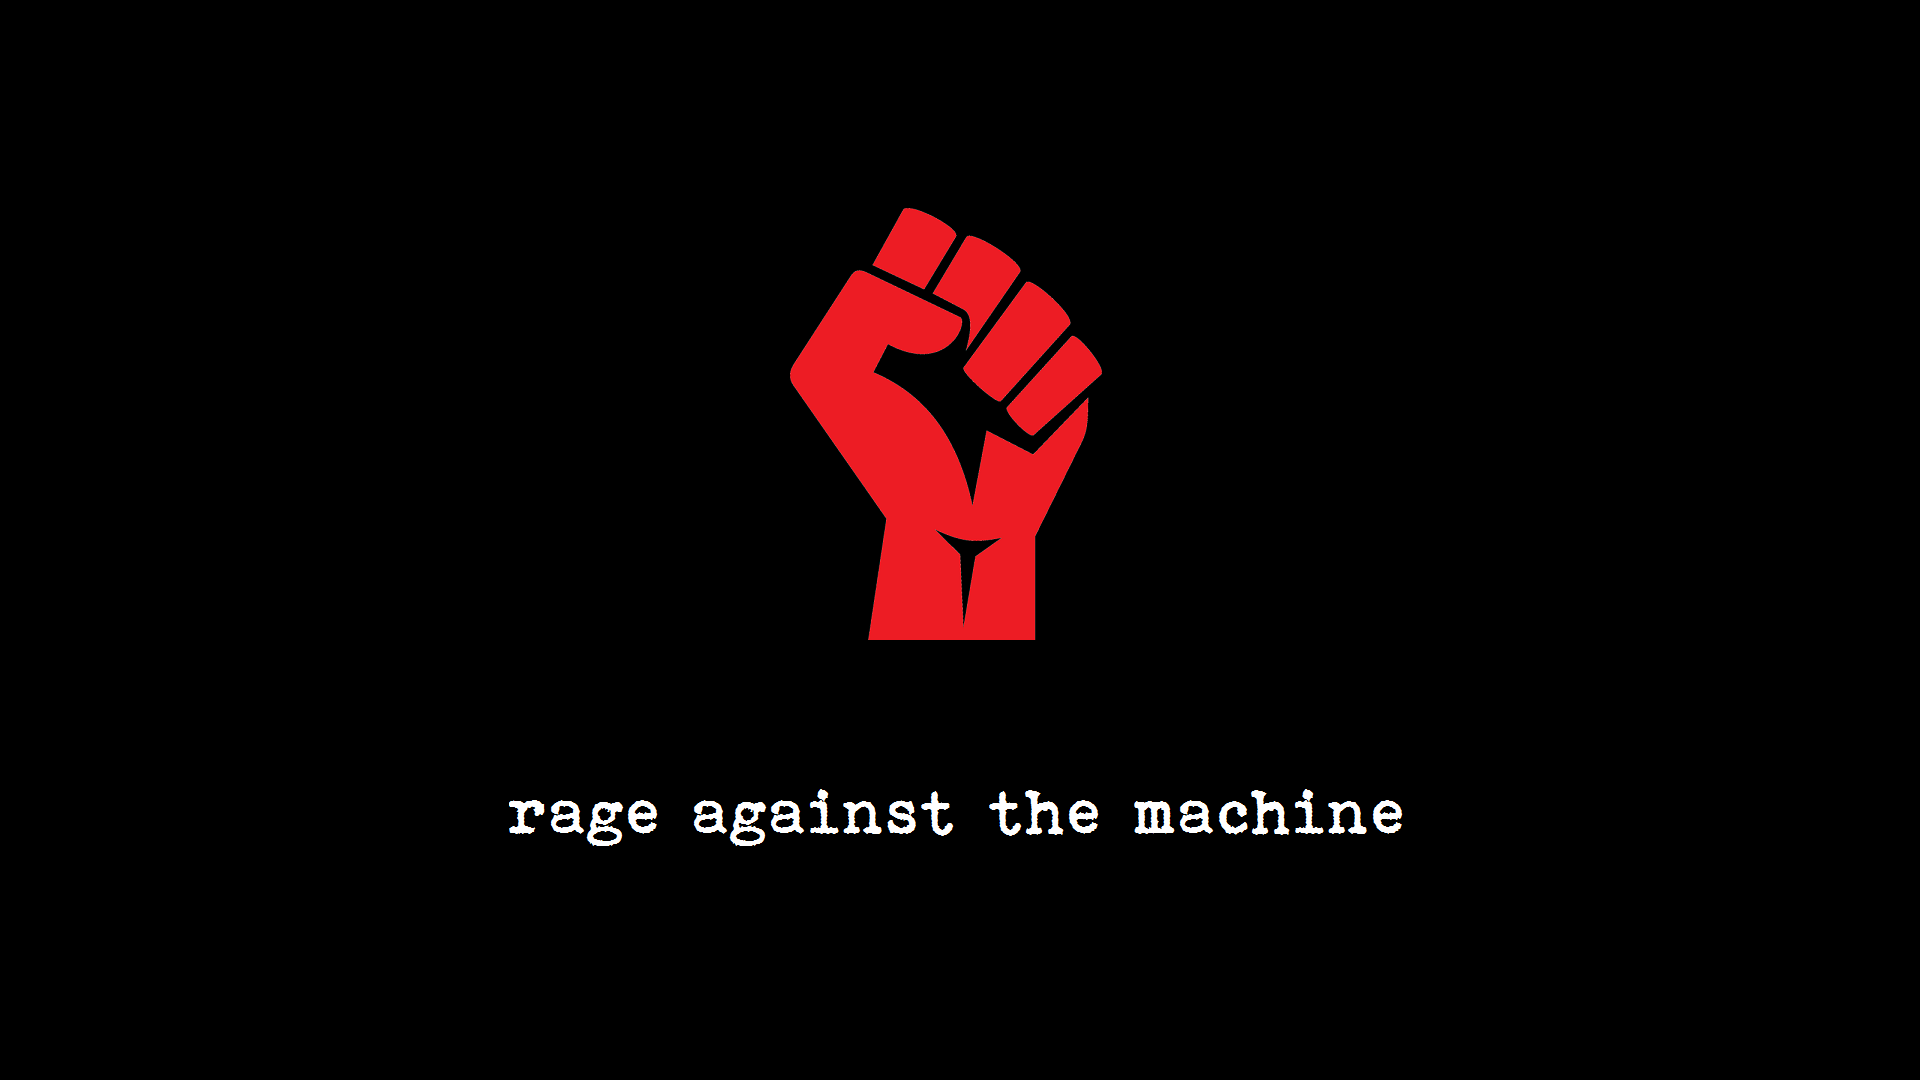 Superb Wallpapers With Quotes For Facebook Download Rage Against The Machine Wallpaper Gallery